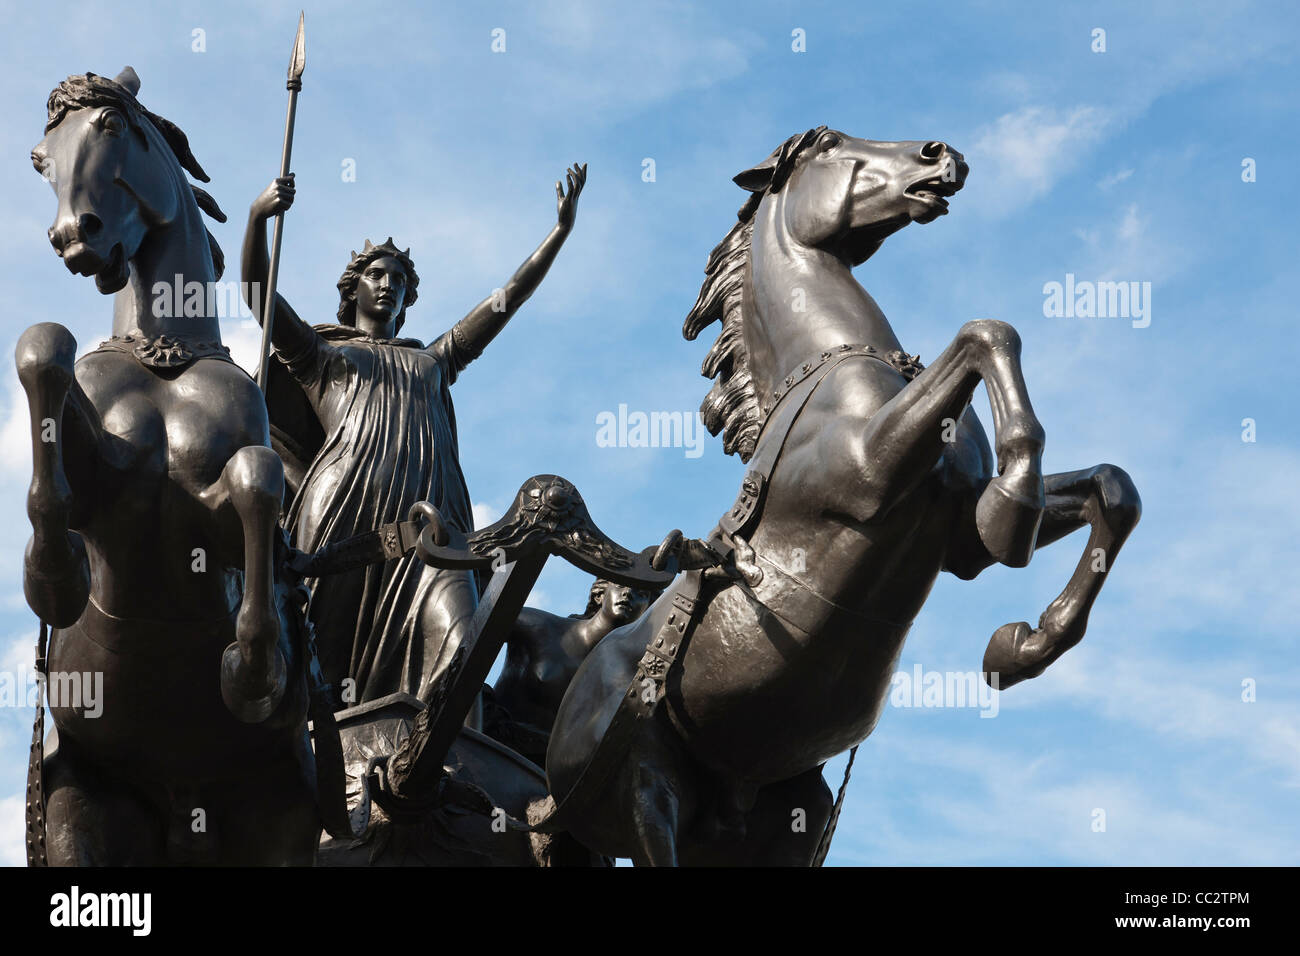 A sculpture depicting the warrior queen Boudica of the Iceni with her daughters, near Westminster Pier, London, Stock Photo